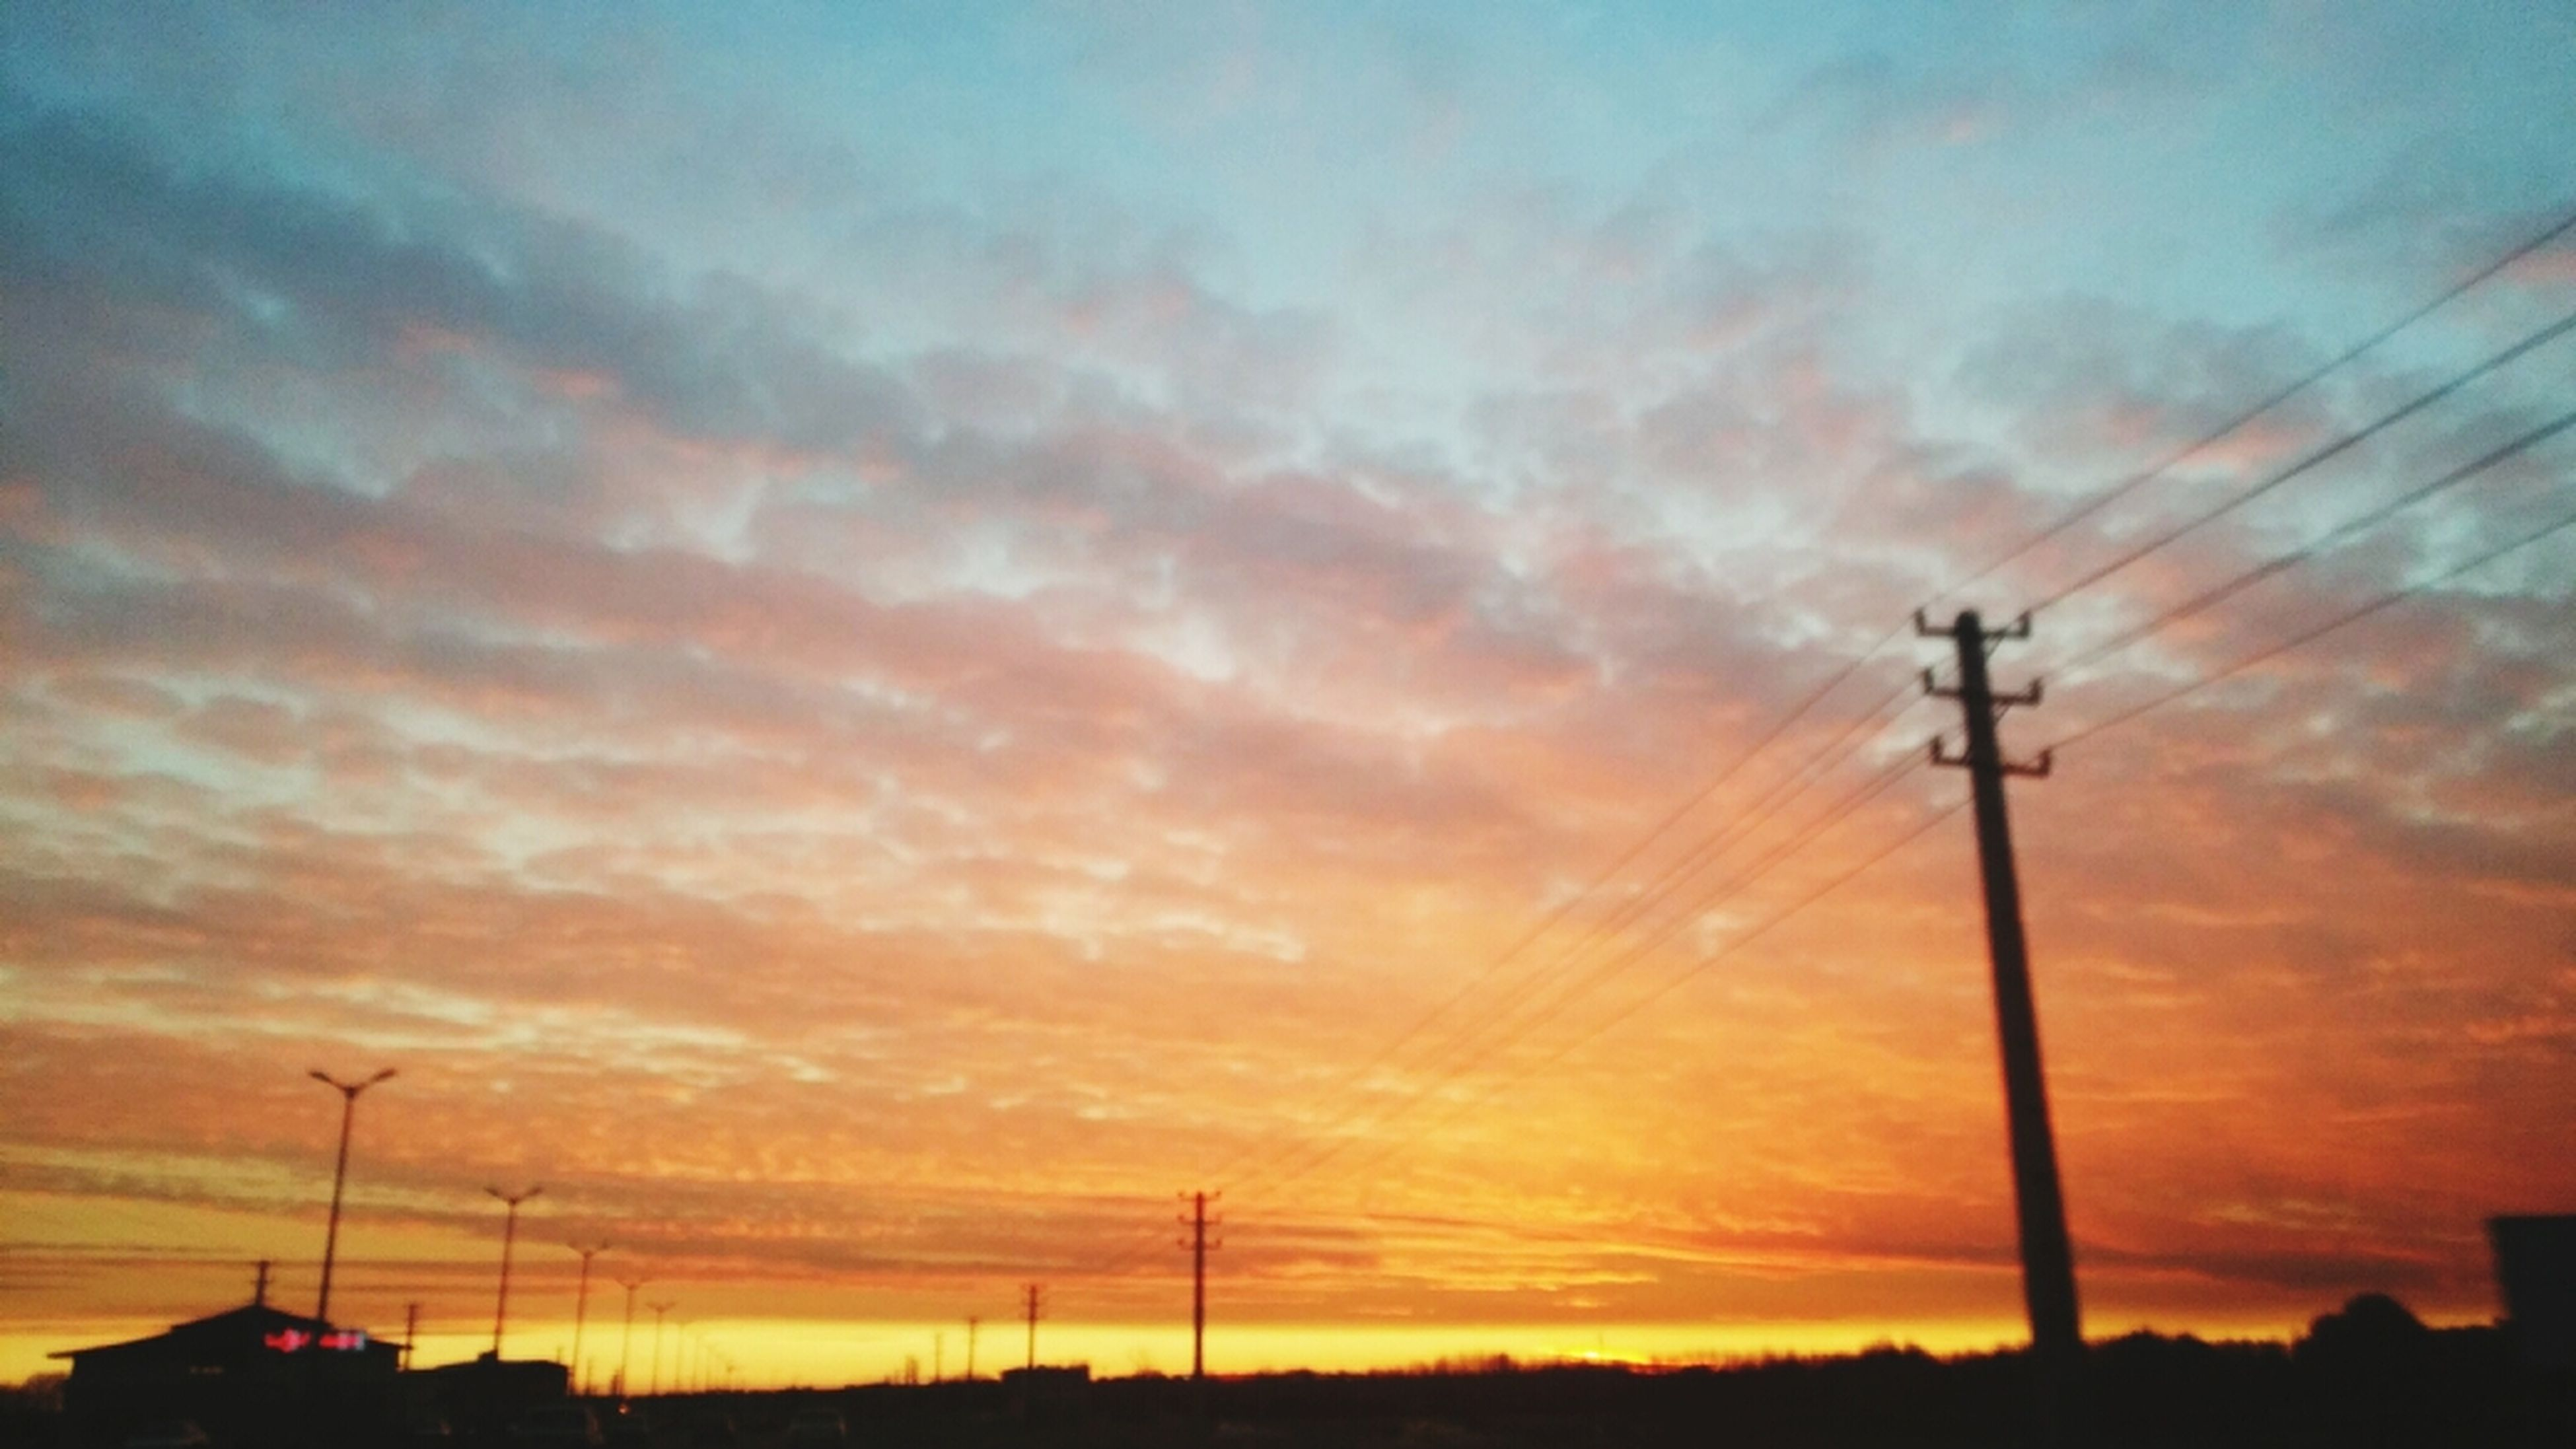 sunset, silhouette, orange color, sky, street light, low angle view, beauty in nature, cloud - sky, scenics, dramatic sky, technology, electricity pylon, tranquility, fuel and power generation, nature, power line, tranquil scene, lighting equipment, idyllic, electricity